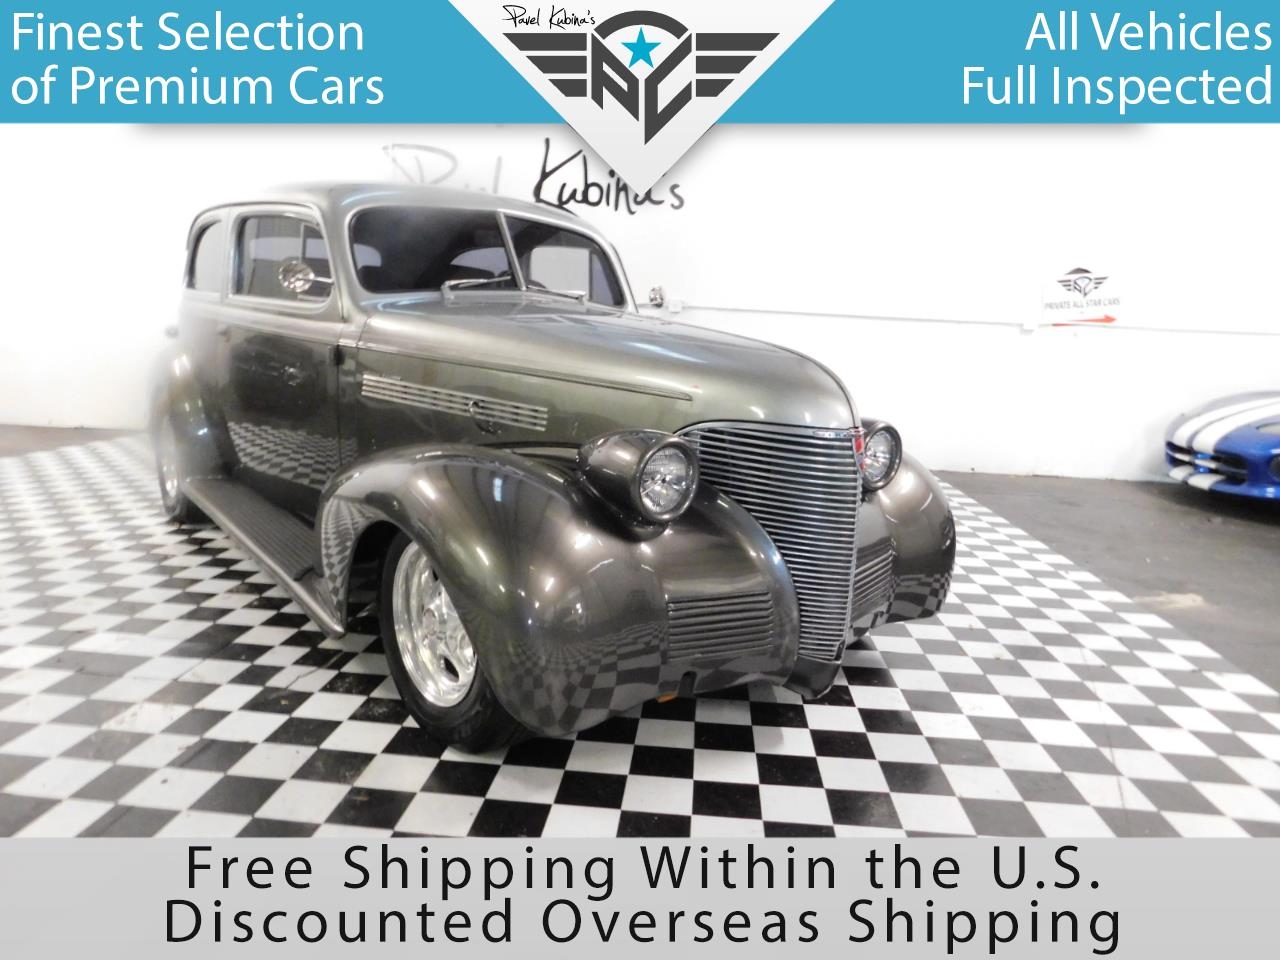 1939 Chevrolet coupe Master Deluxe